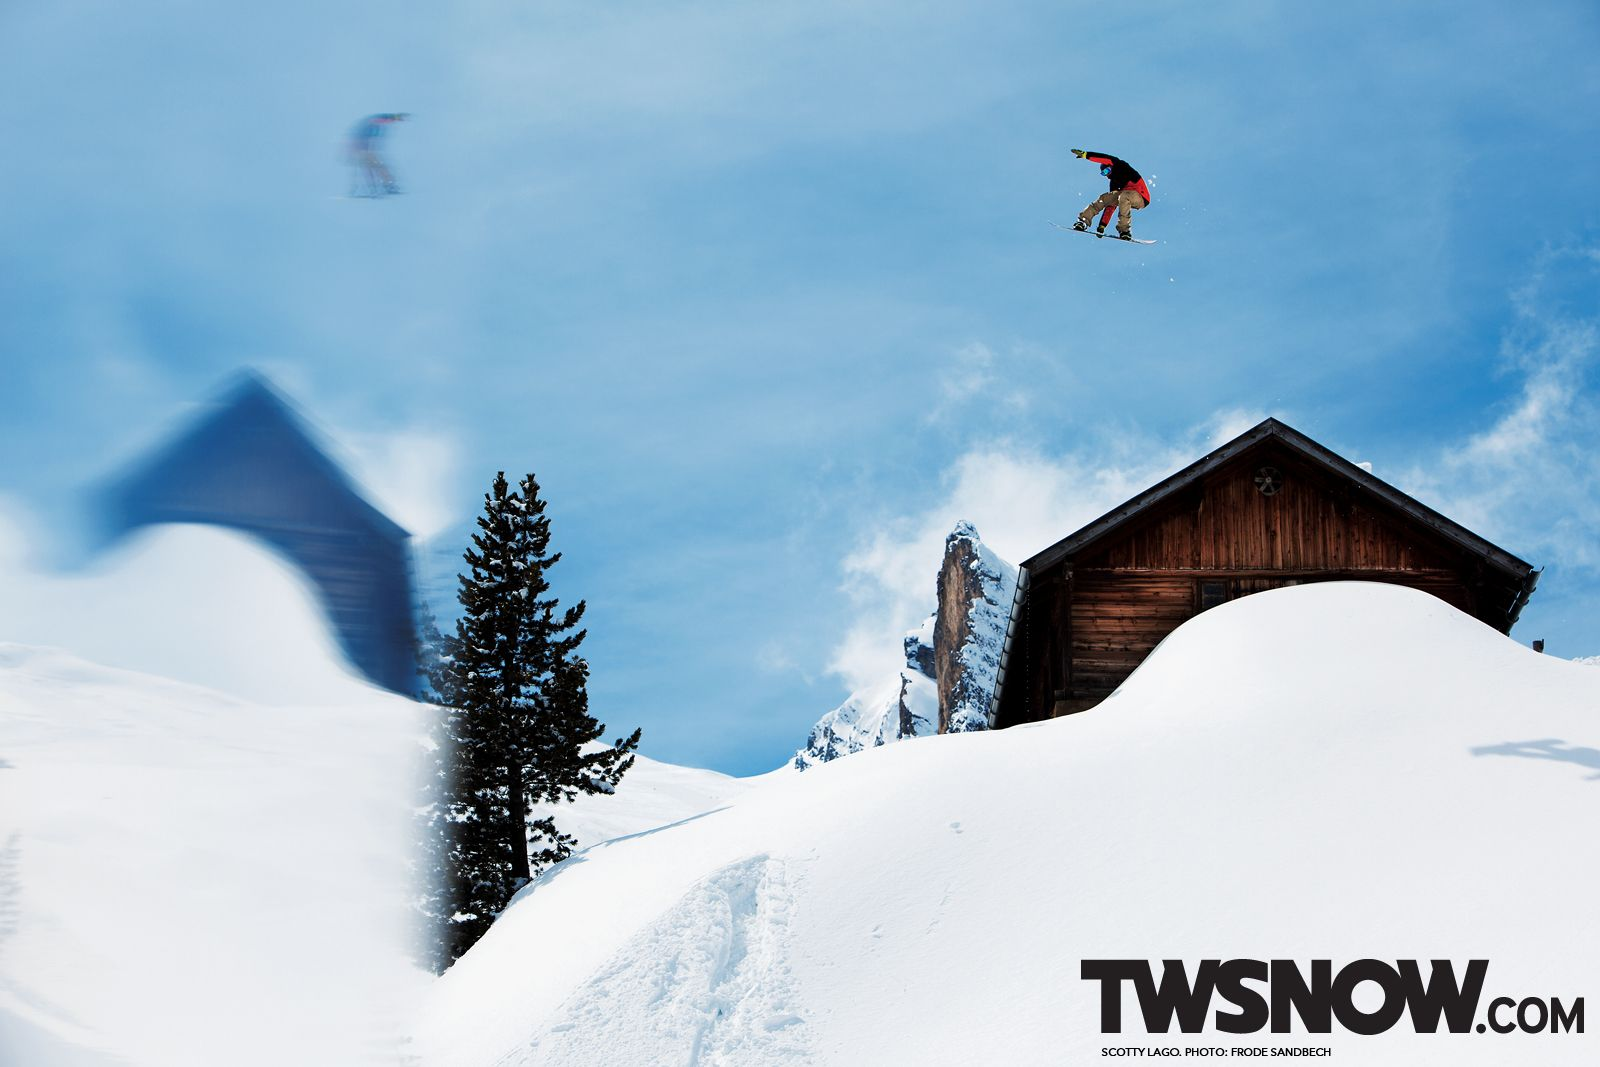 Wallpaper Snowboarding Shaun White